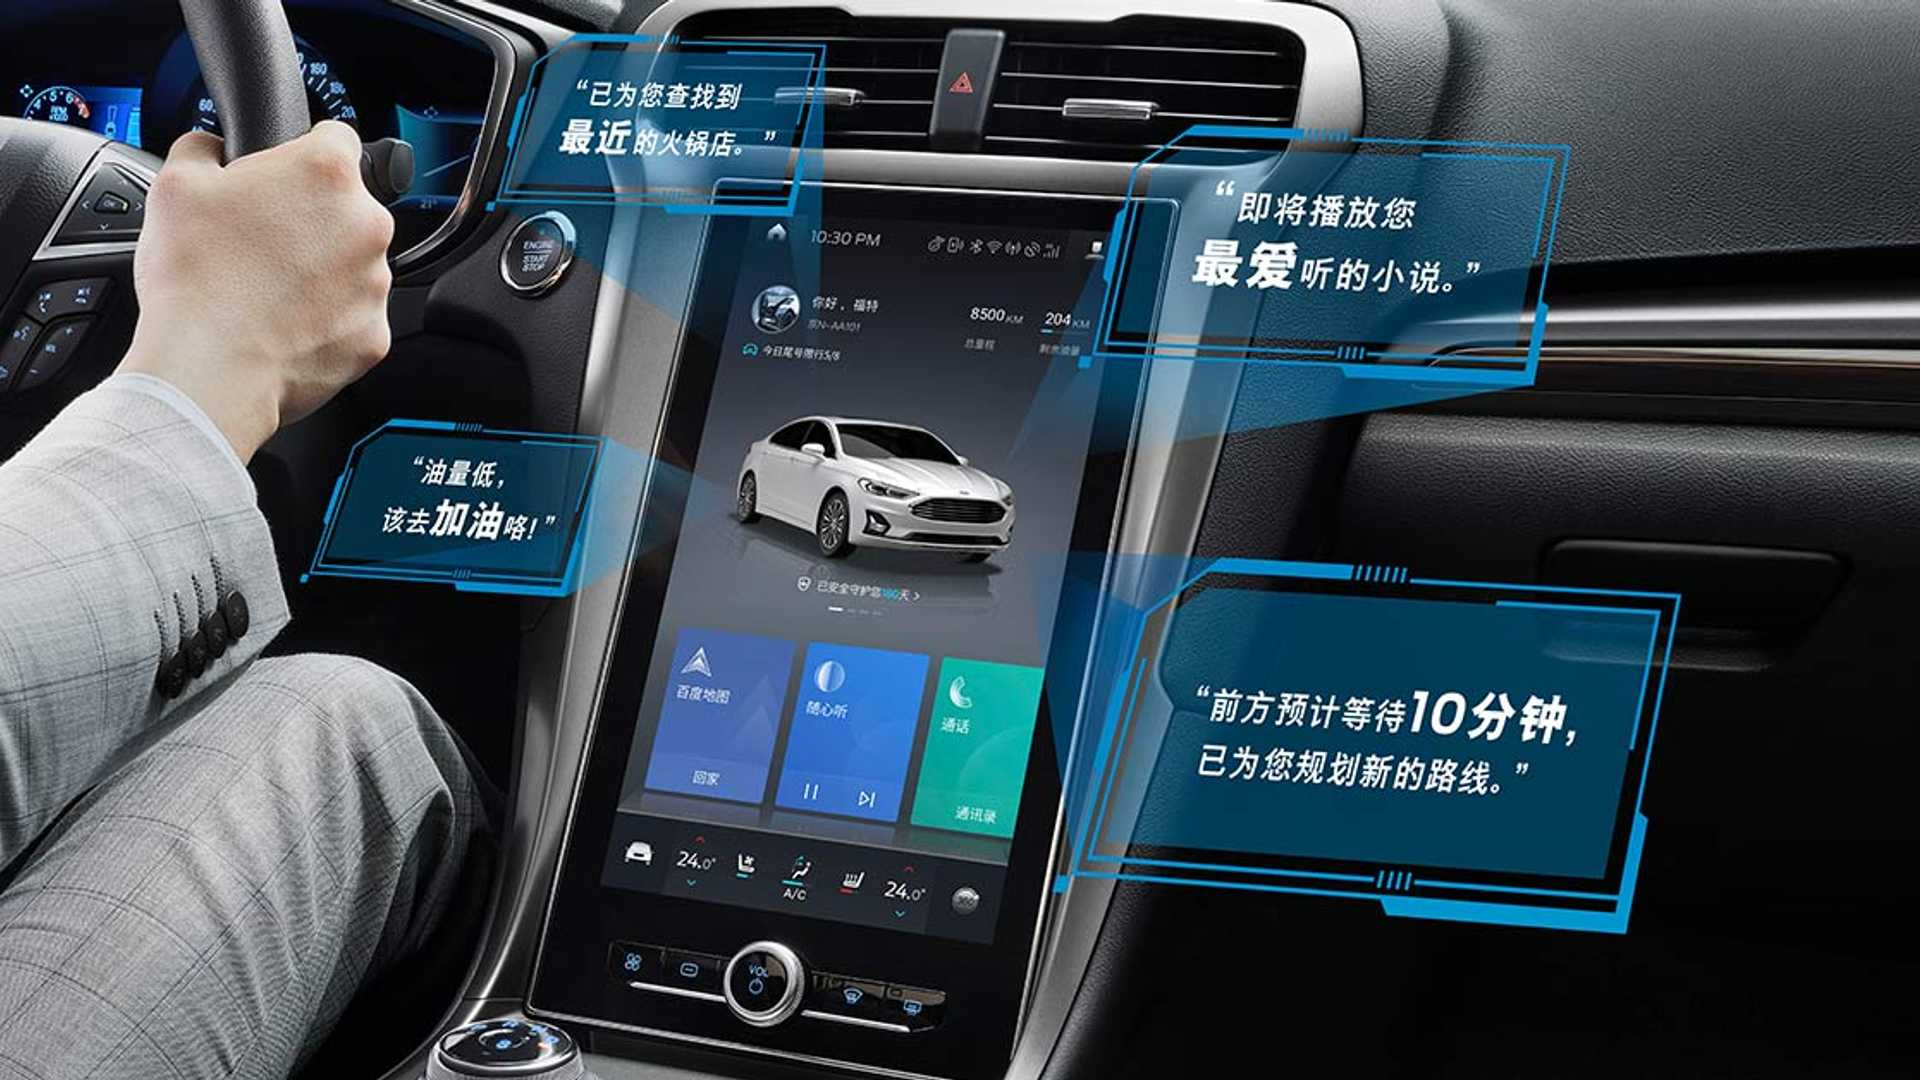 2020-ford-mondeo-facelift-china-spec-lead-image